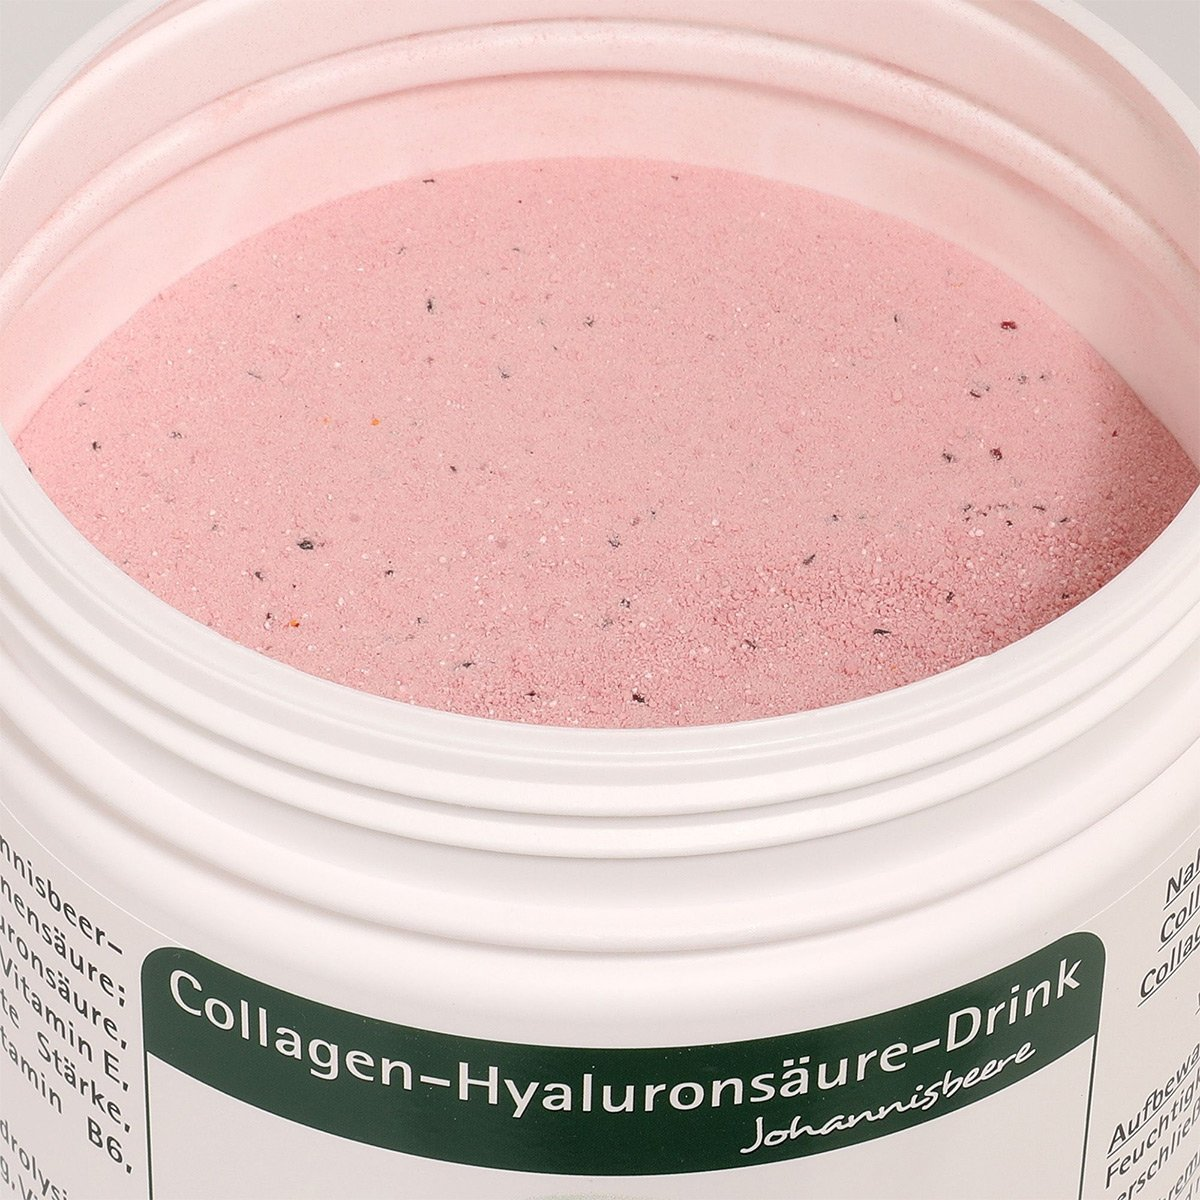 Collagen-Hyaluronsäure-Drink (800g) -NEU-